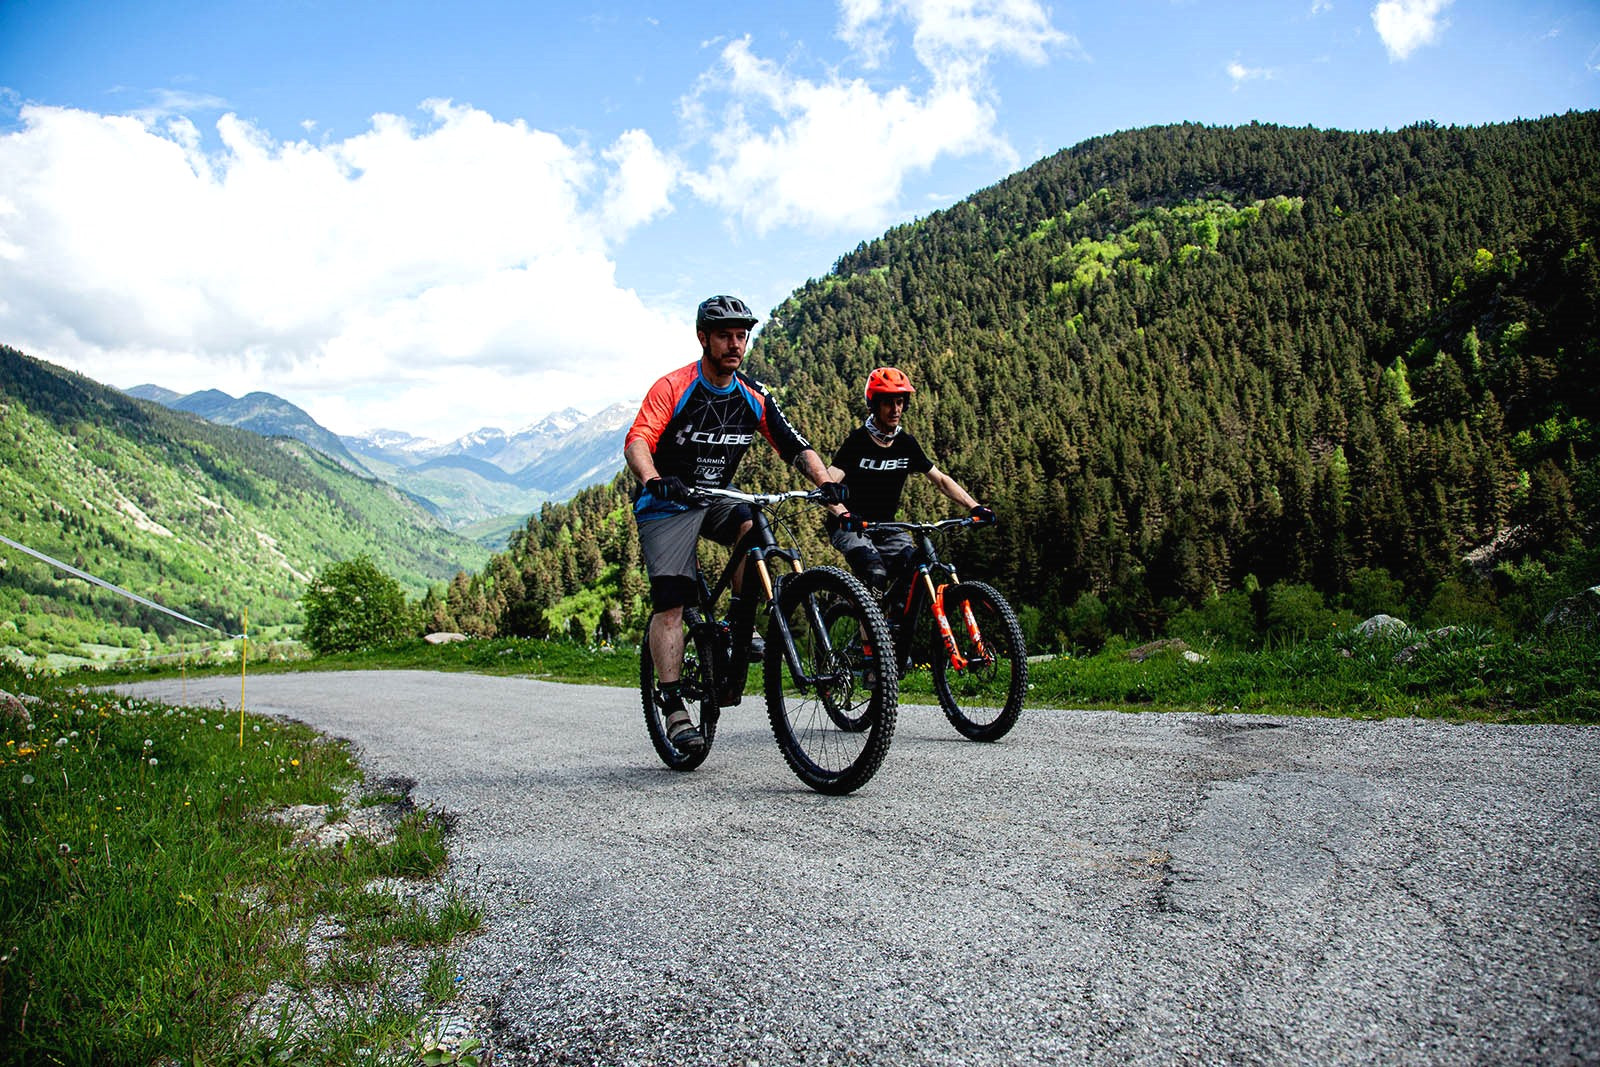 Marc and David. Val d'Aran in the background. Photography: Júlia Miralles